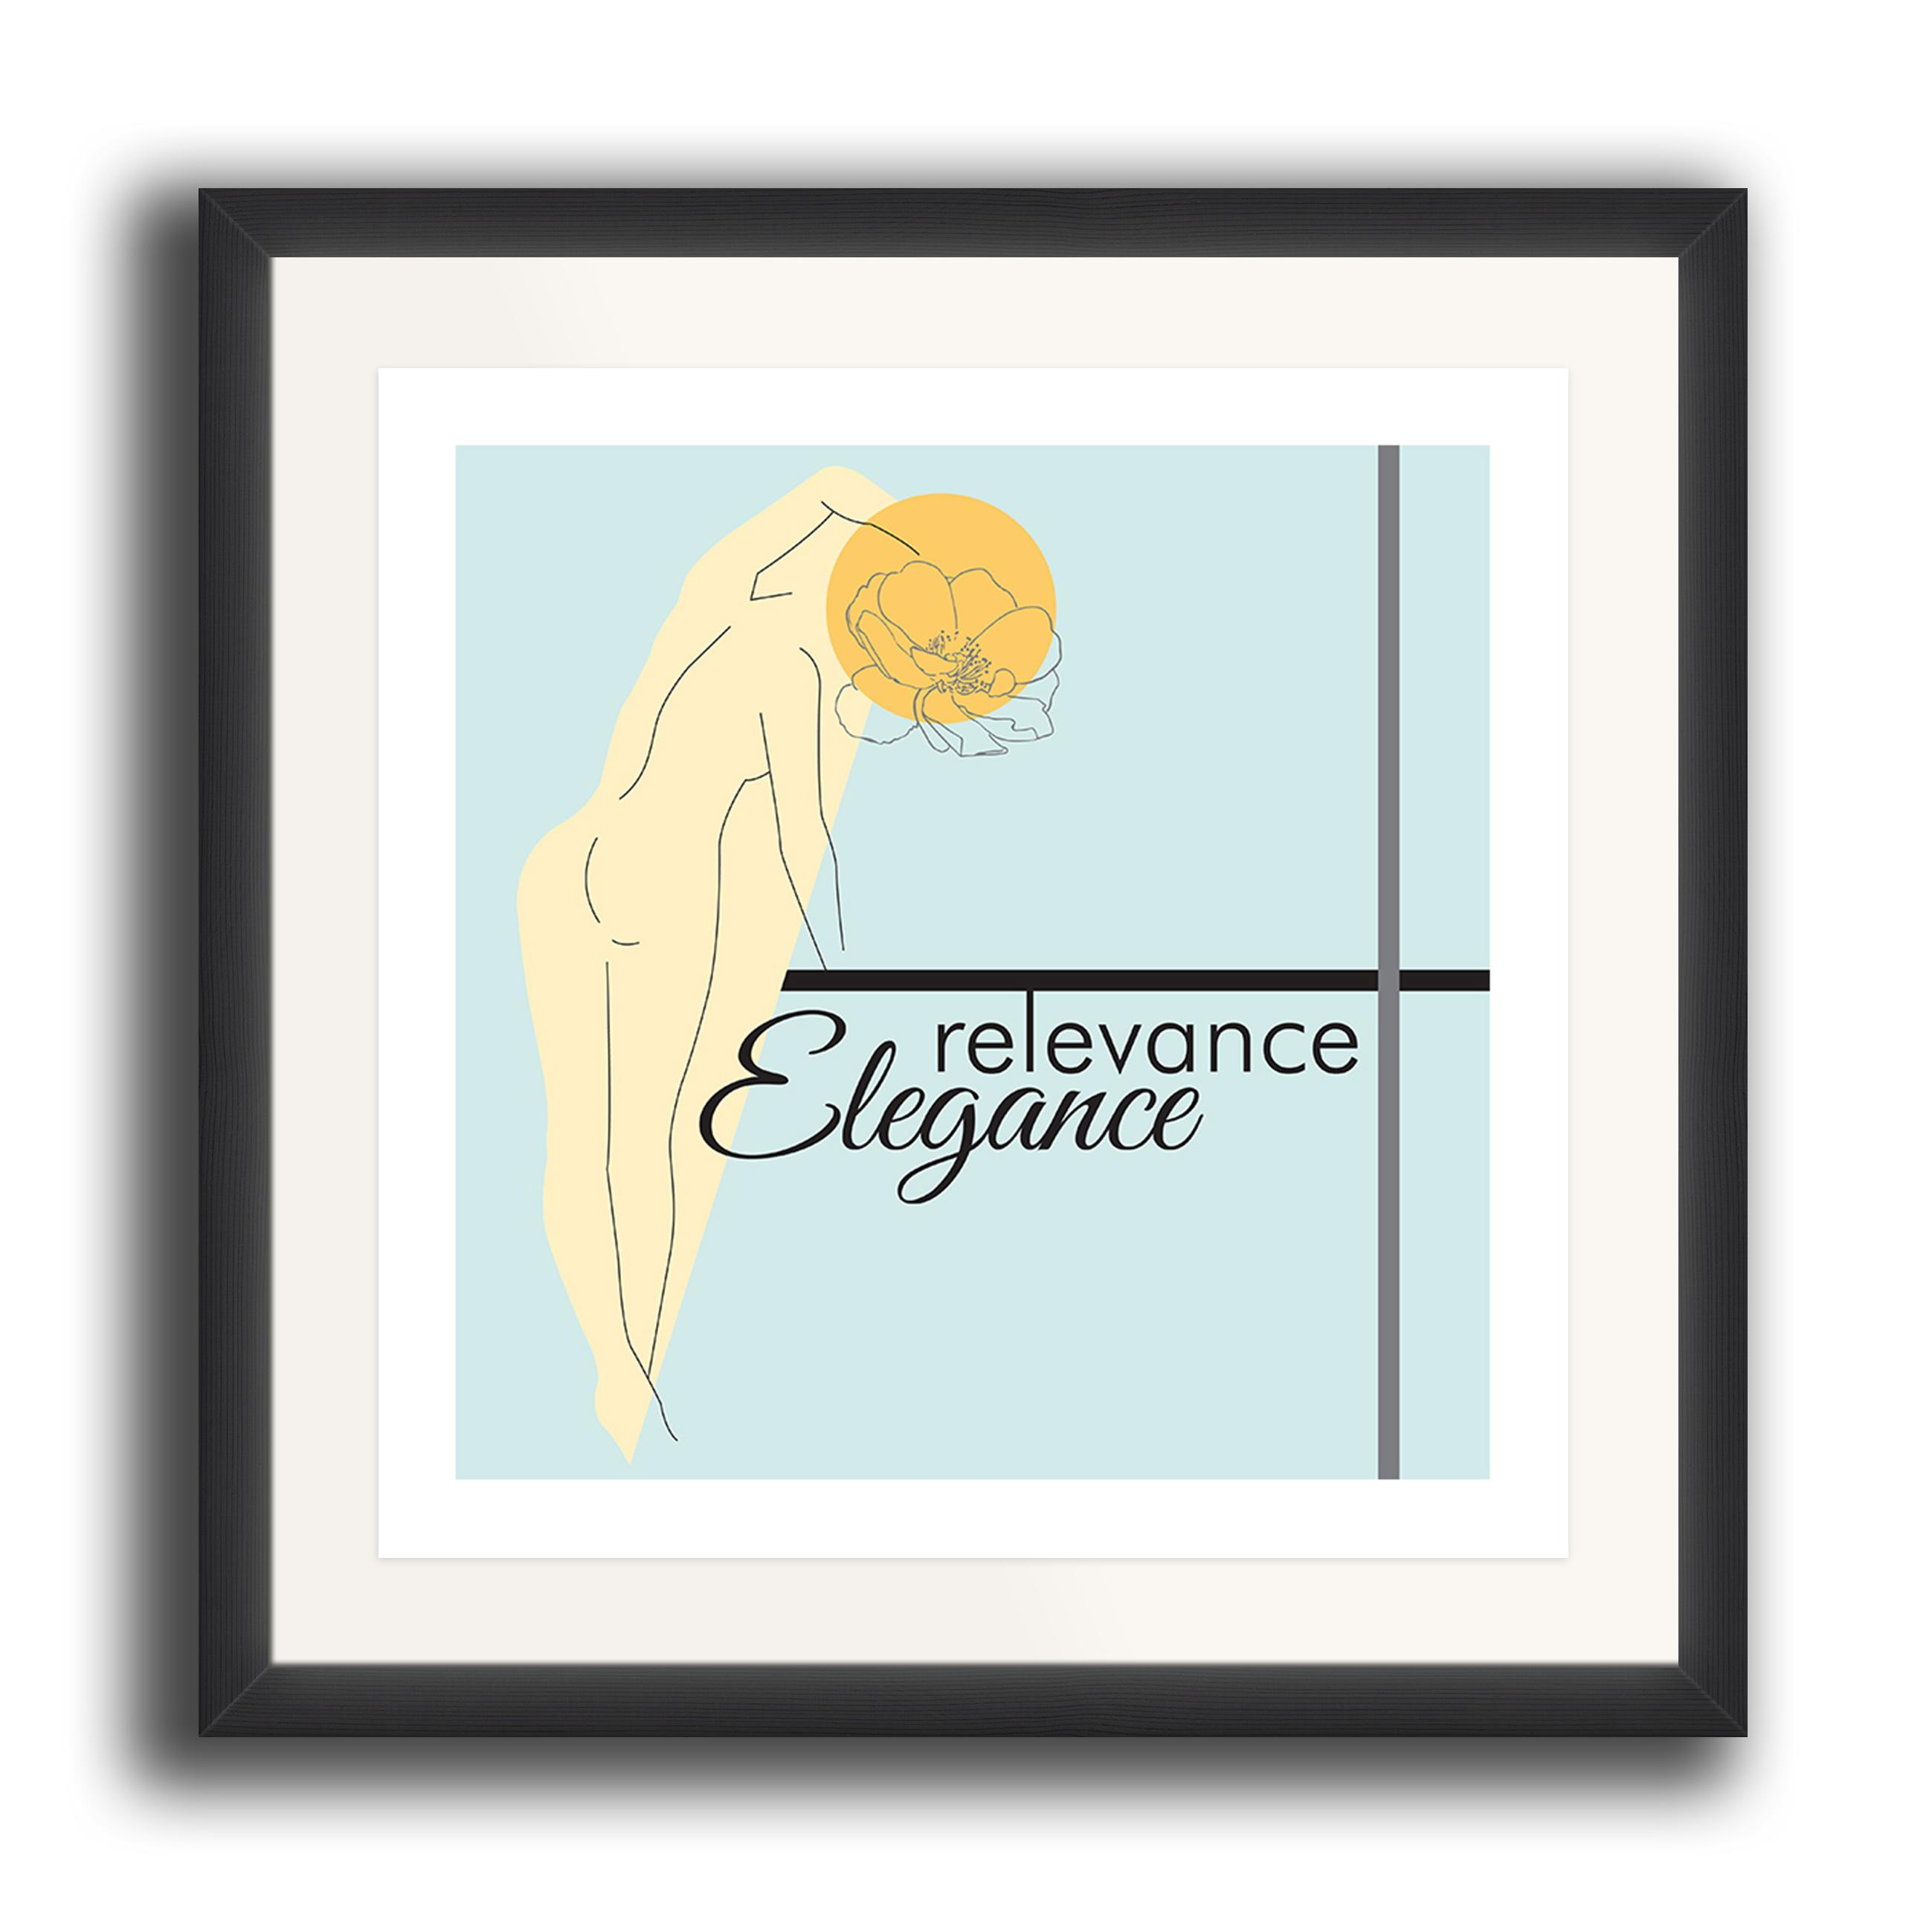 A watercolour print by Clarrie-Anne on eco fine art paper titled Relevance Elegance showing outline of a female with a line drawn flow head and typography with coloured shapes. The image is set in a black coloured picture frame.